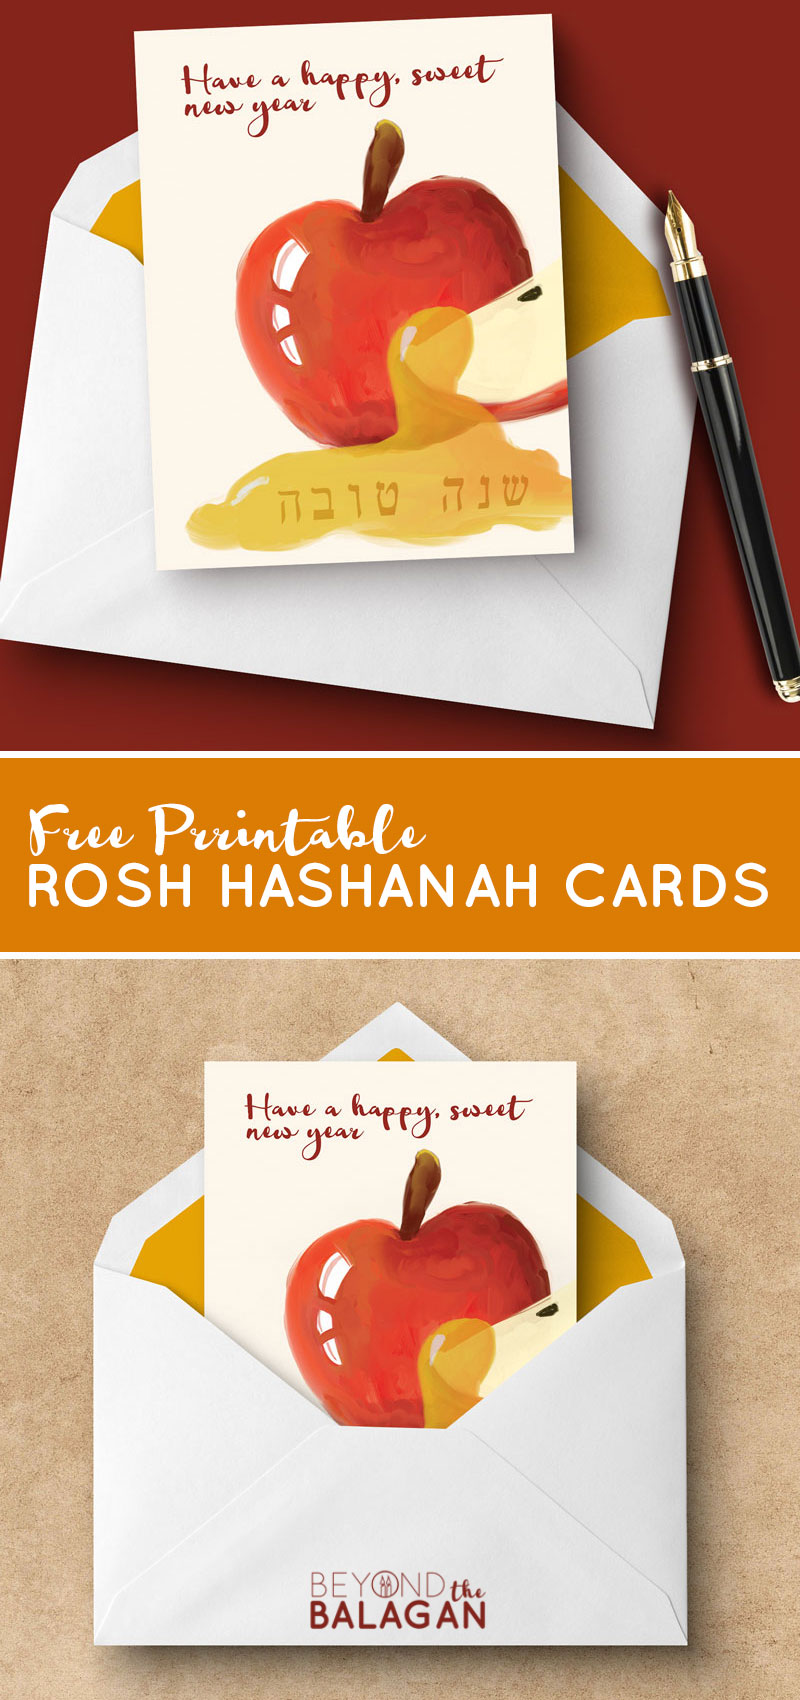 Rosh hashanah cards free printable greeting cards for the jewish download these free printable rosh hashanah cards these fun free printable rosh hashanah greeting cards m4hsunfo